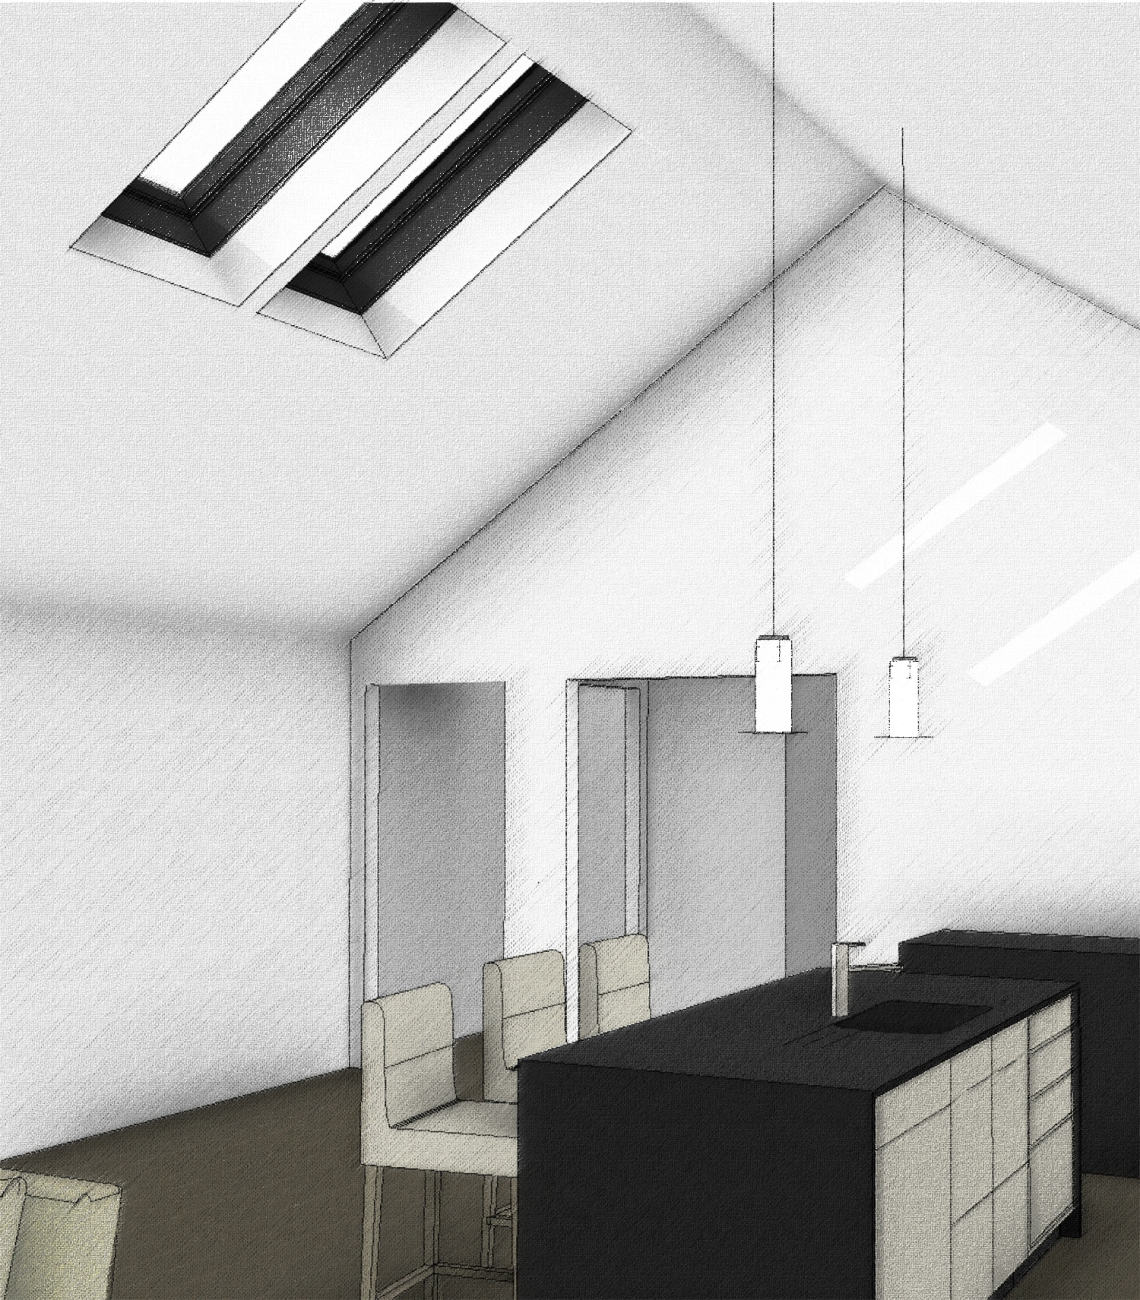 C:UsersASUS comDocuments27A WALTHAM ST FOR CONSTRUCTION - 3D